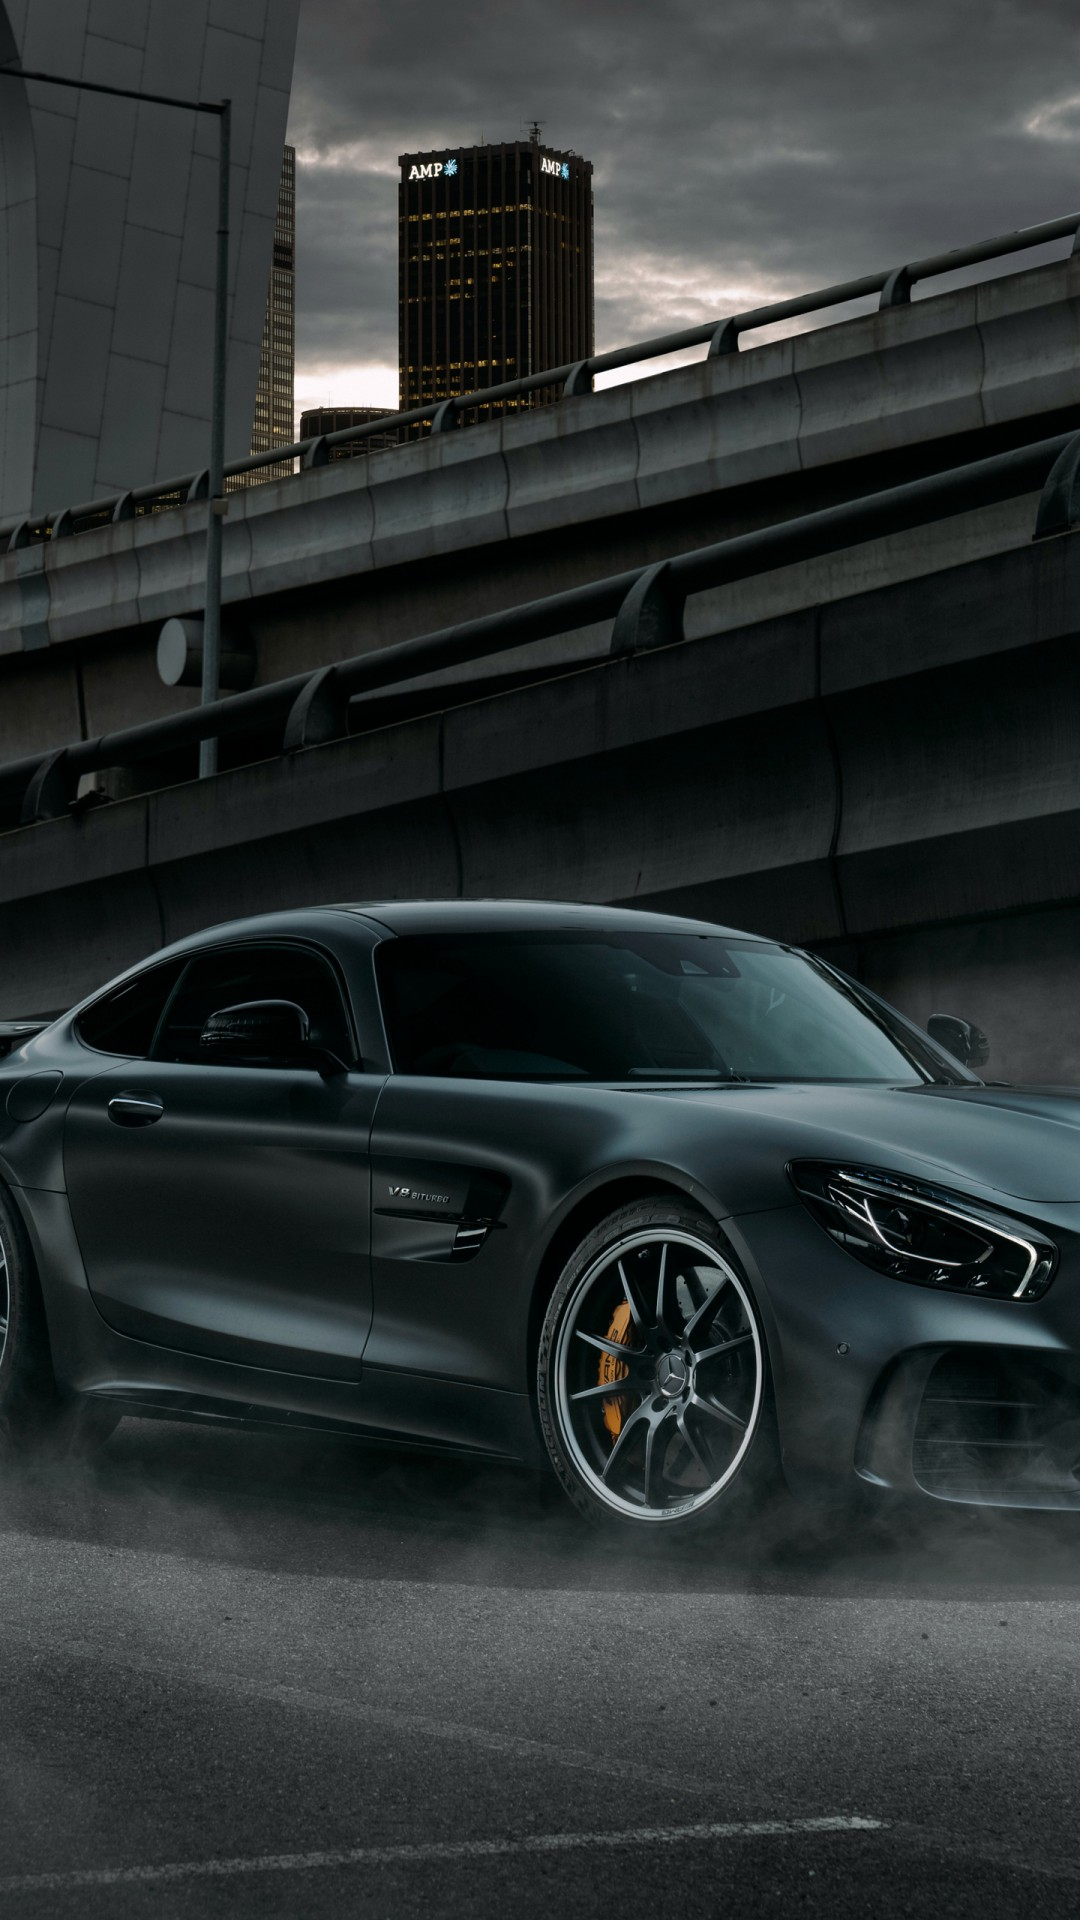 Free Download Mercedes Amg Gt And Benz Car Wallpaper For Desktop